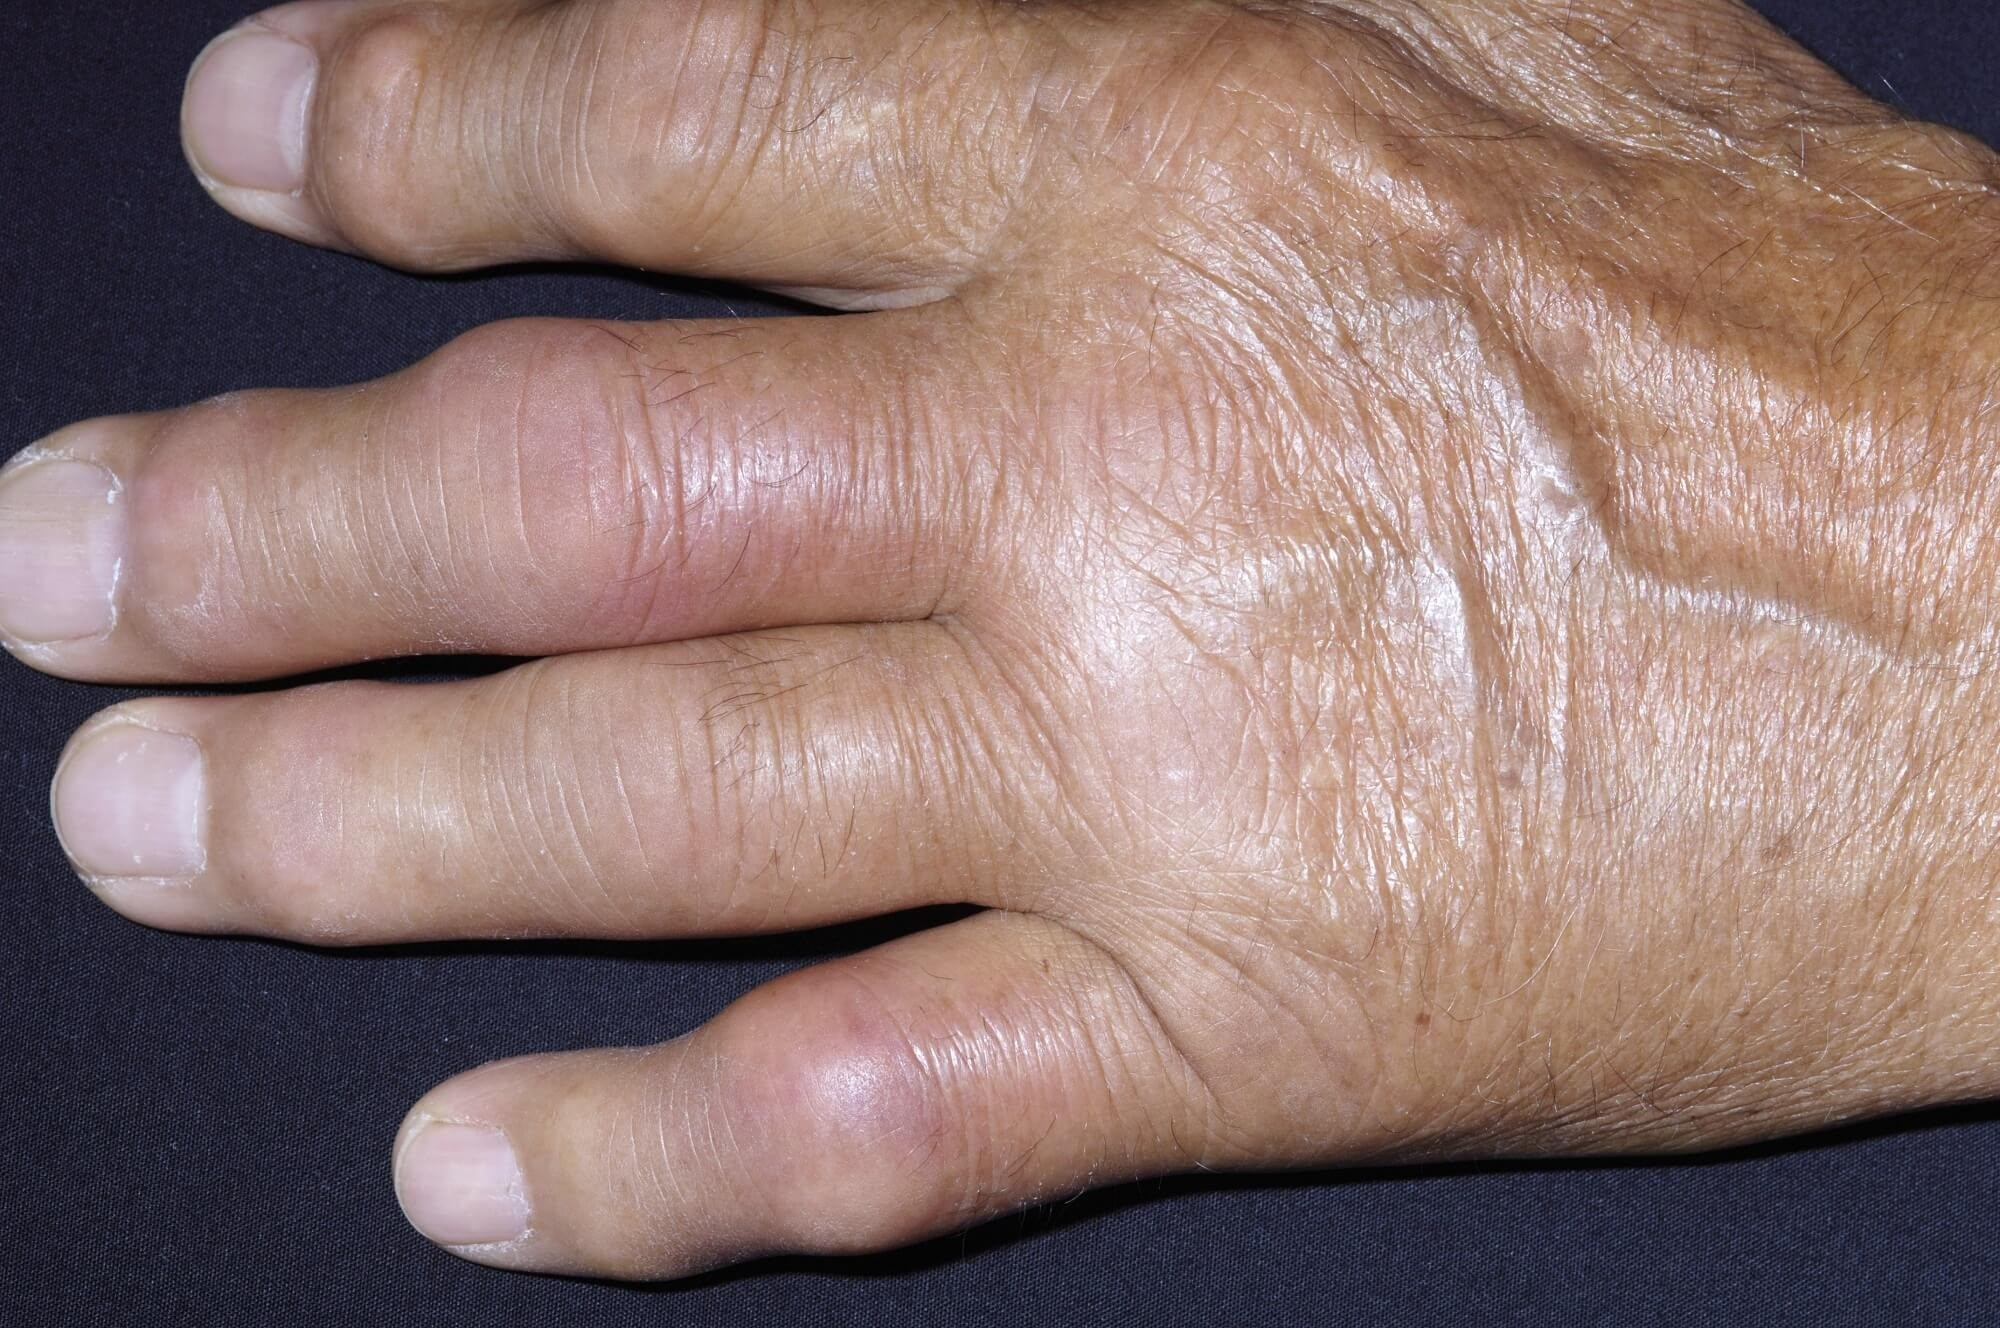 Gout Associated With Psoriatic Arthritis, Psoriasis in Adults